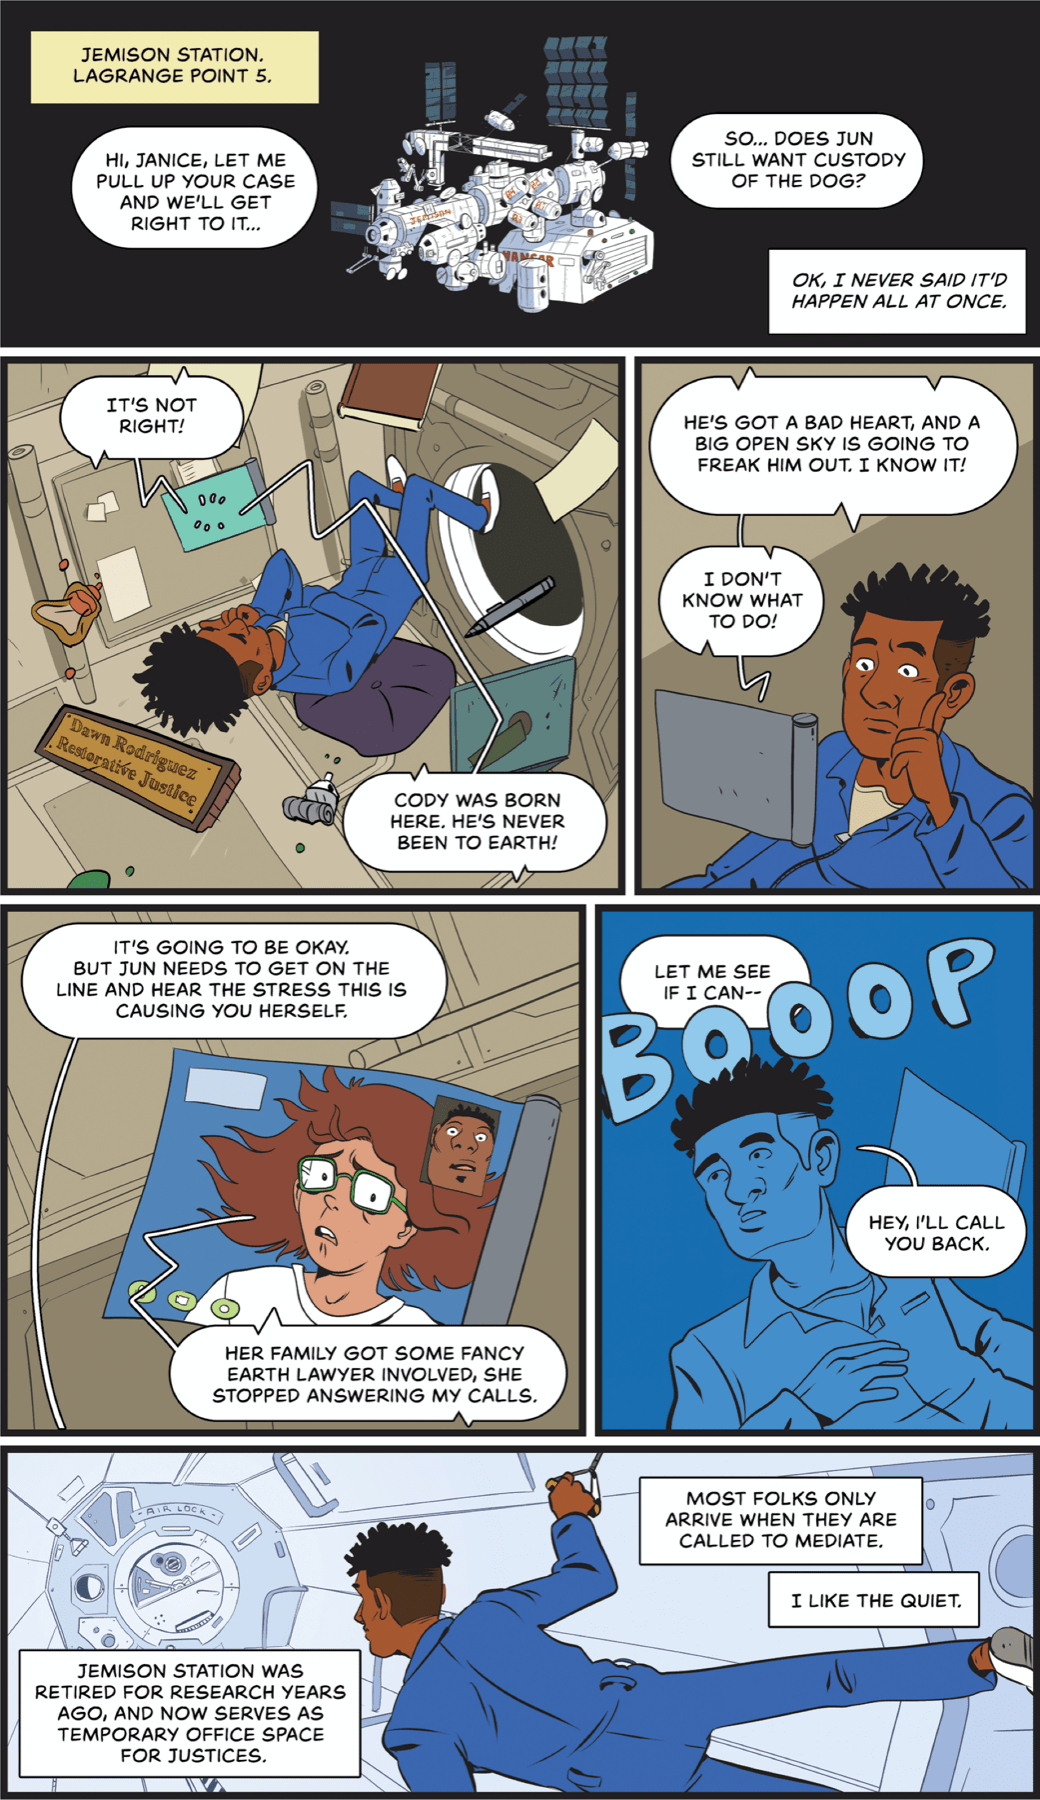 """Panel 1: Exterior of a space station, jumbled with different modules and solar panels. Narration: Jemison Station. Lagrange point 5. Speech bubble: Hi Janice, let me pull up your case and we'll get right to it… So…does Jun still want custody of the dog? Narration: Ok, I never said it'd happen all at once. Panel 2: A black astronaut in a flight suit hovers inside the space station. A plaque floating near him says 'Dawn Rodrigues, restorative justice."""" A tablet hovering near him has speech bubbles coming out that say: """"It's not right! Cody was born here. He's never been to earth!"""" Panel 3: Dawn continues to look at the tablet, with a concerned expression. Speech from the tablet: """"He's got a bad heart, and a big open sky is going to freak him out. I know it! I don't know what to do!"""" Panel 4: The tablet screen is in view, with a concerned woman. Her hair is floating, implying she's also in space. Dawn: """"It's going to be okay. But Jun needs to get on the line and hear the stress this is causing you herself."""" Woman on tablet: """"Her family got some fancy earth lawyer involved, she stopped answering my calls."""" Panel 5: All the colors turn blue. A giant BOOOOP crosses the panel. Dawn looks off to the side. Dawn says: """"Let me see if I can— Hey, I'll call you back."""" Panel 6: Dawn floats down a corridor to another module. Narration text: Jemison station was retired for research years ago, and now serves as temporary office space for justices. Most folks only arrive when they are called to mediate. I like the quiet."""